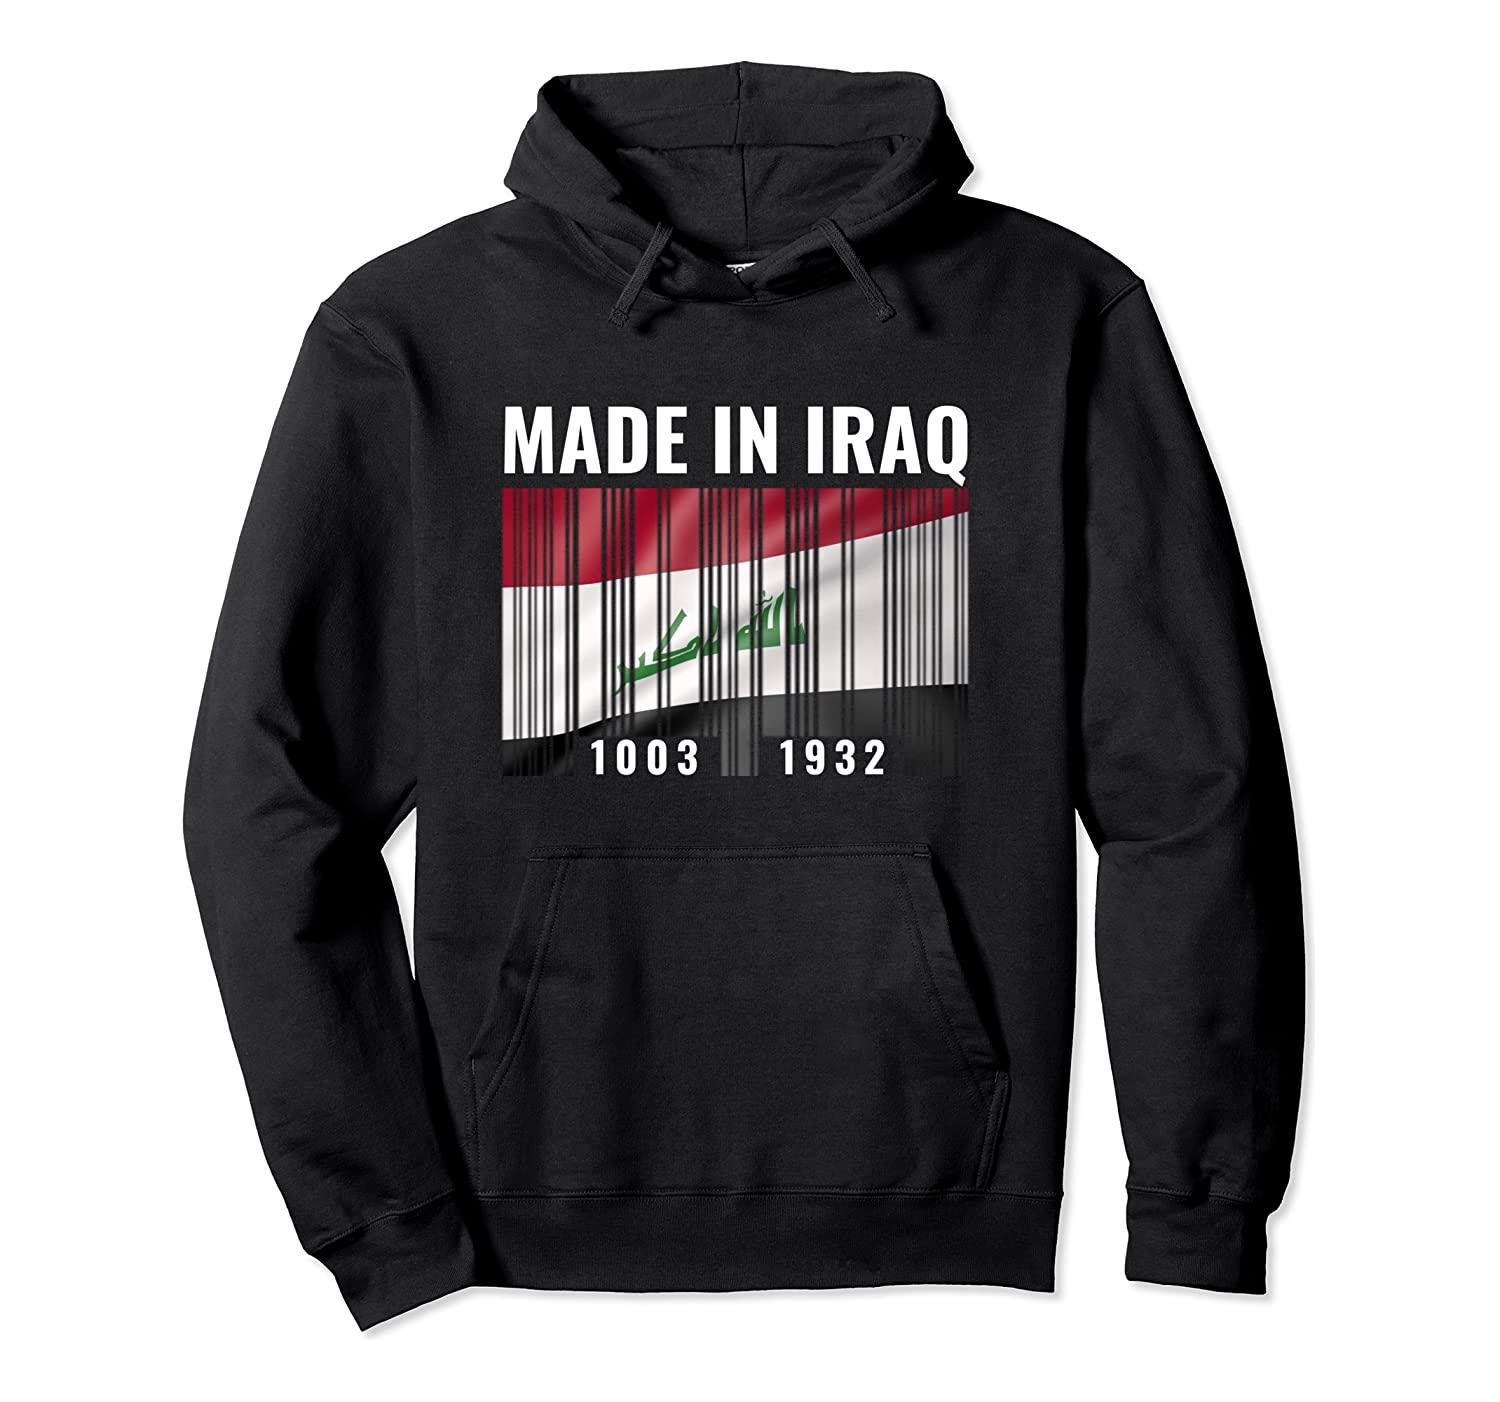 Iraq Heritage Iraqi Roots Barcode Pullover Hoodie Unisex Size S-5XL with Color Black/Grey/Navy/Royal Blue/Dark Heather